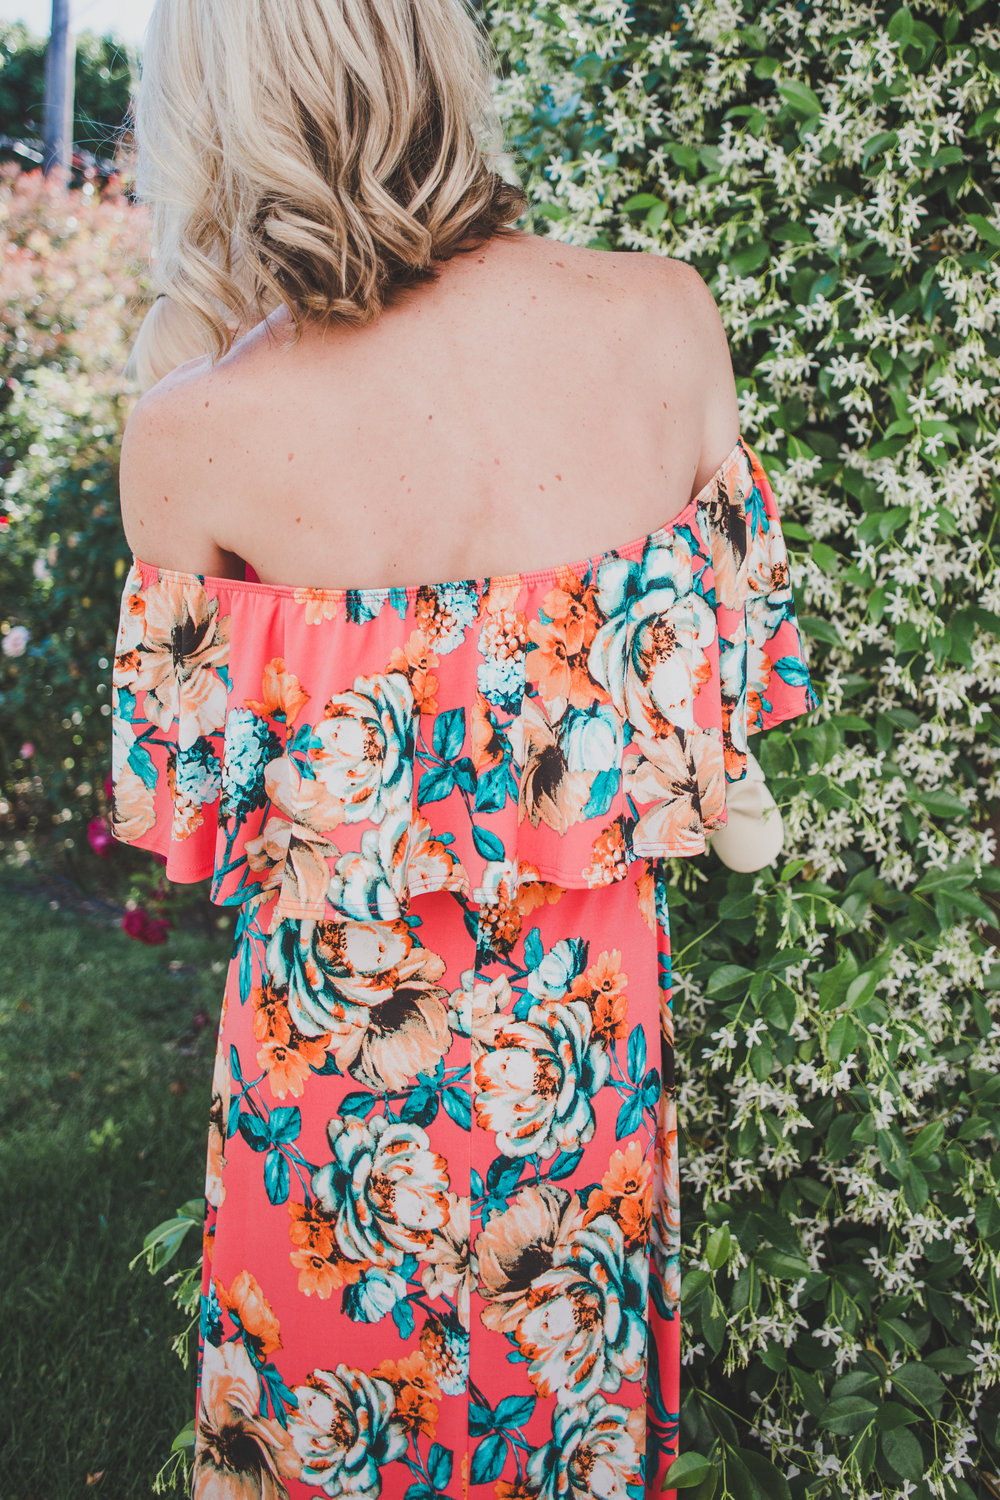 Affordable Summer Mom Fashion - PinkBlush - Shop Floral Print Maxi Dresses